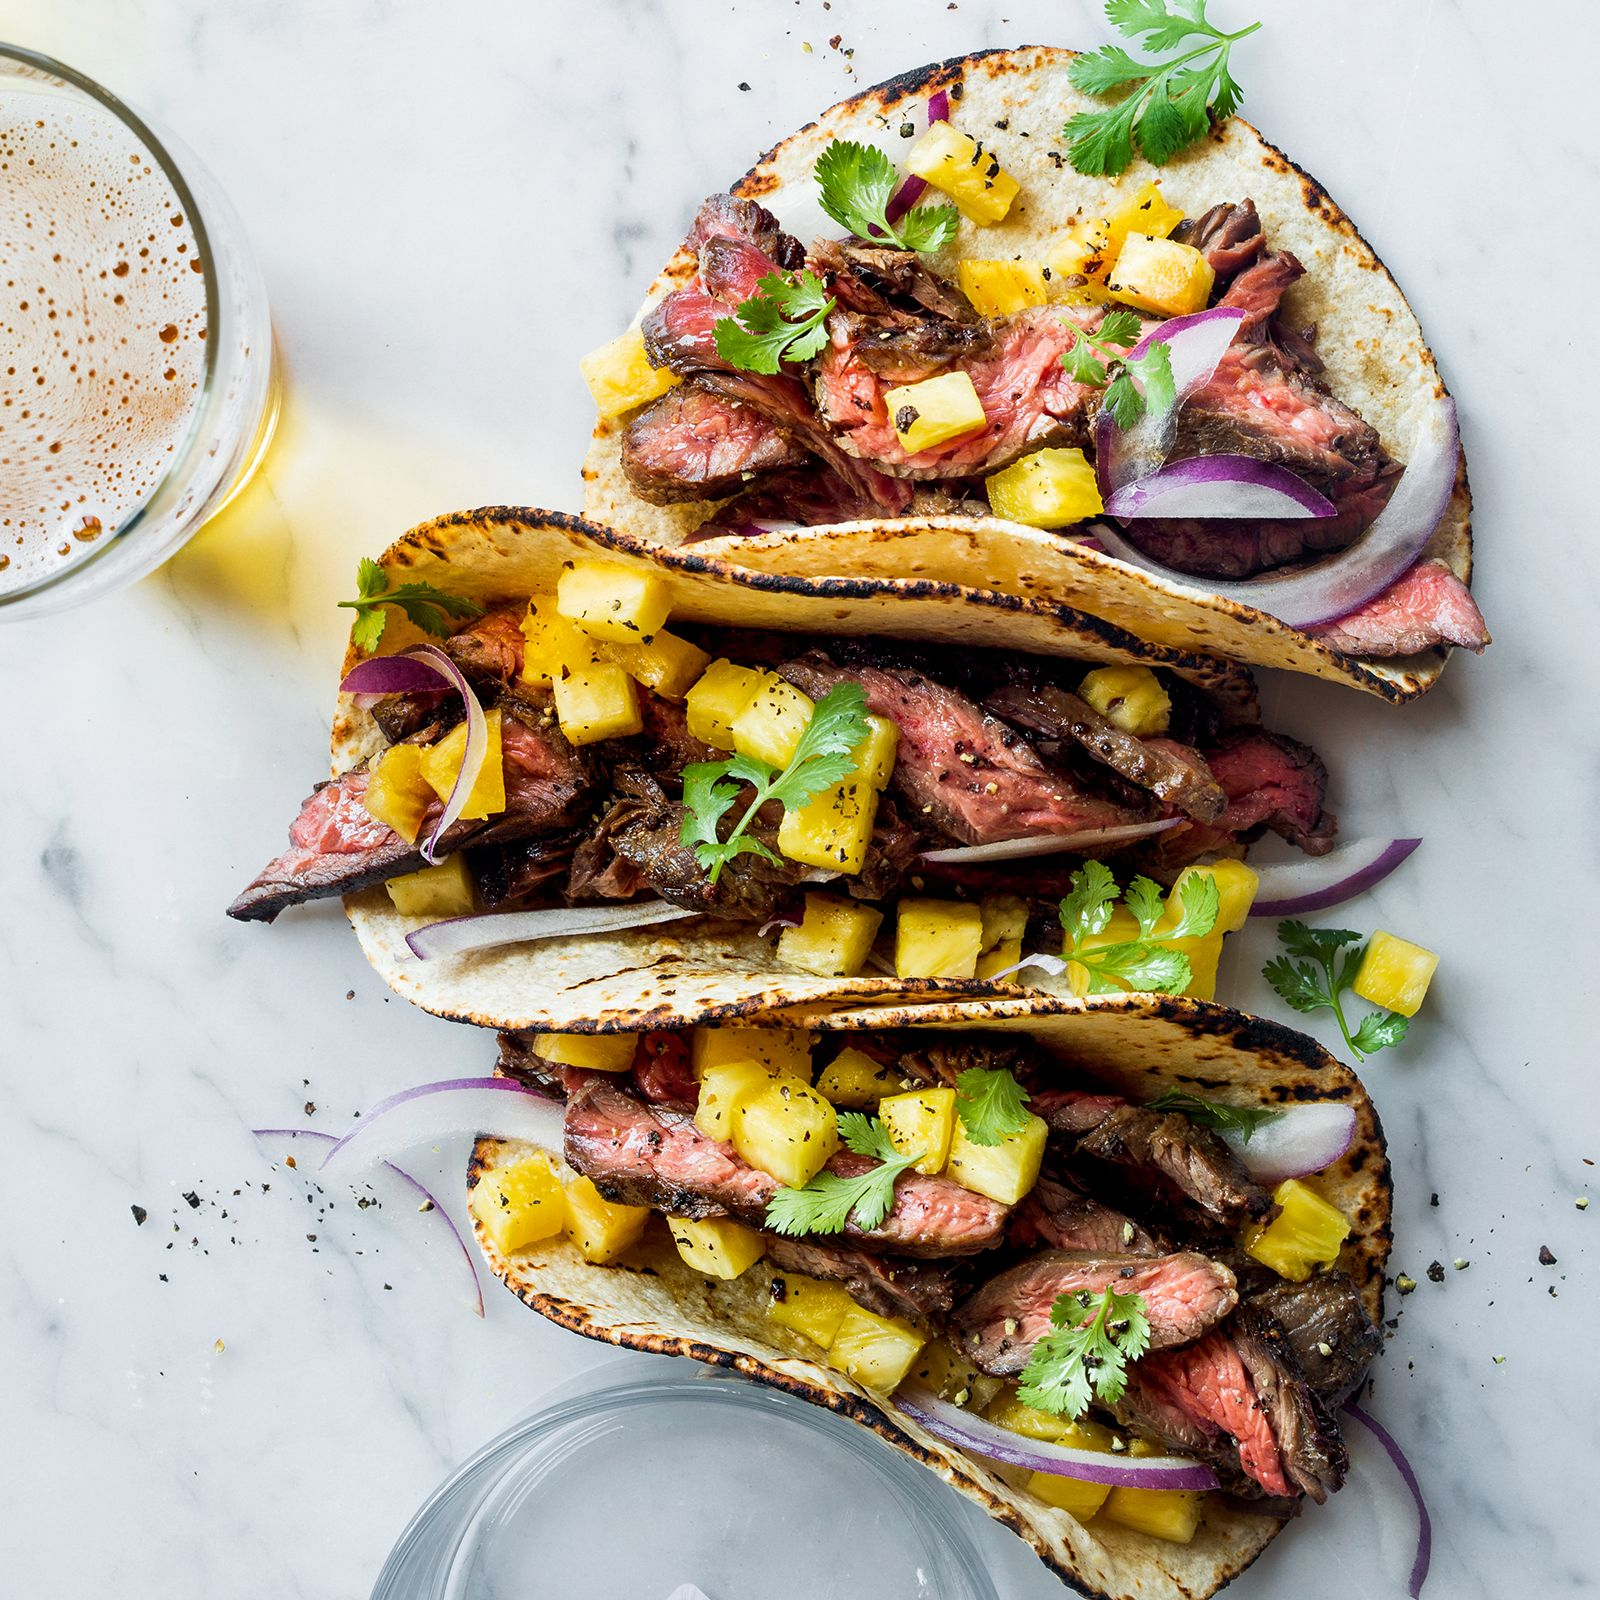 From fish tacos with creamy lime guacamole to crispy fried chicken-filled tacos, here are terrific taco recipes.